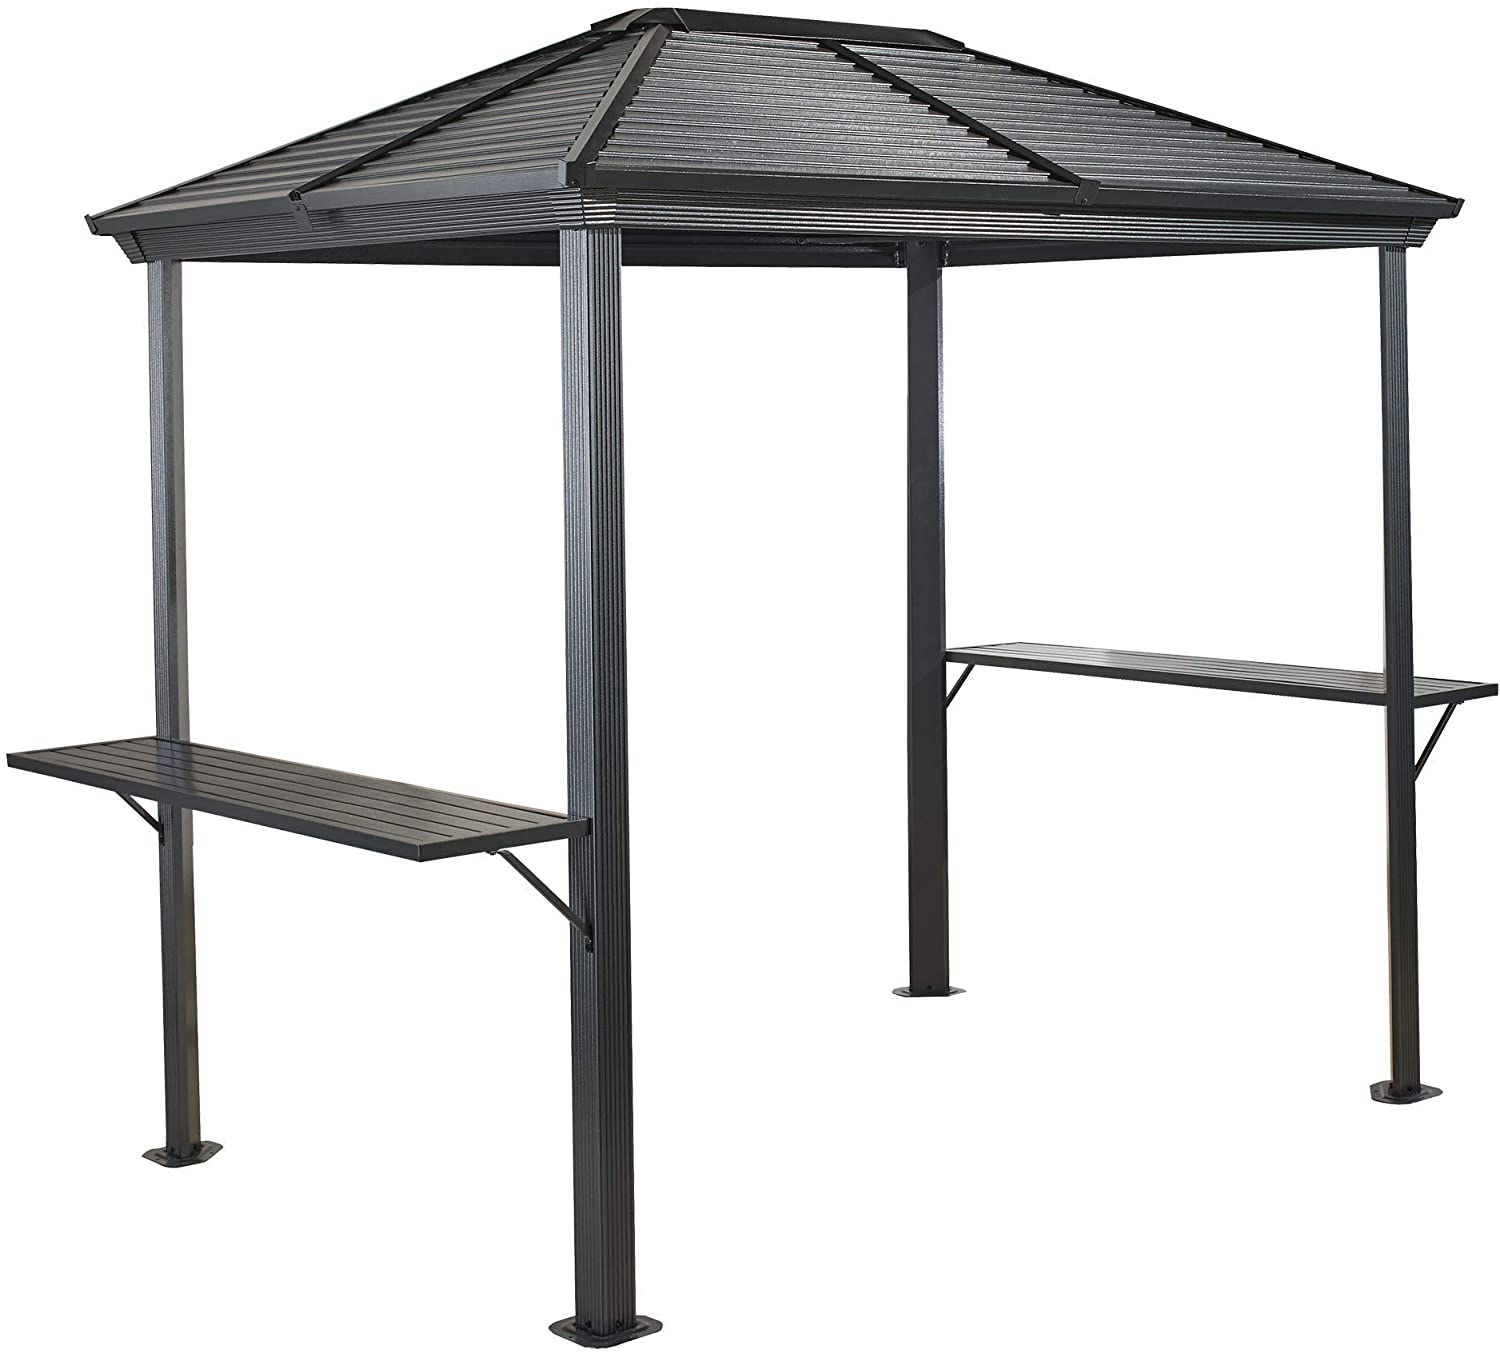 Sojag Outdoor 5' x 8' Ventura Hardtop Grill Gazebo with Shelving, Charcoal